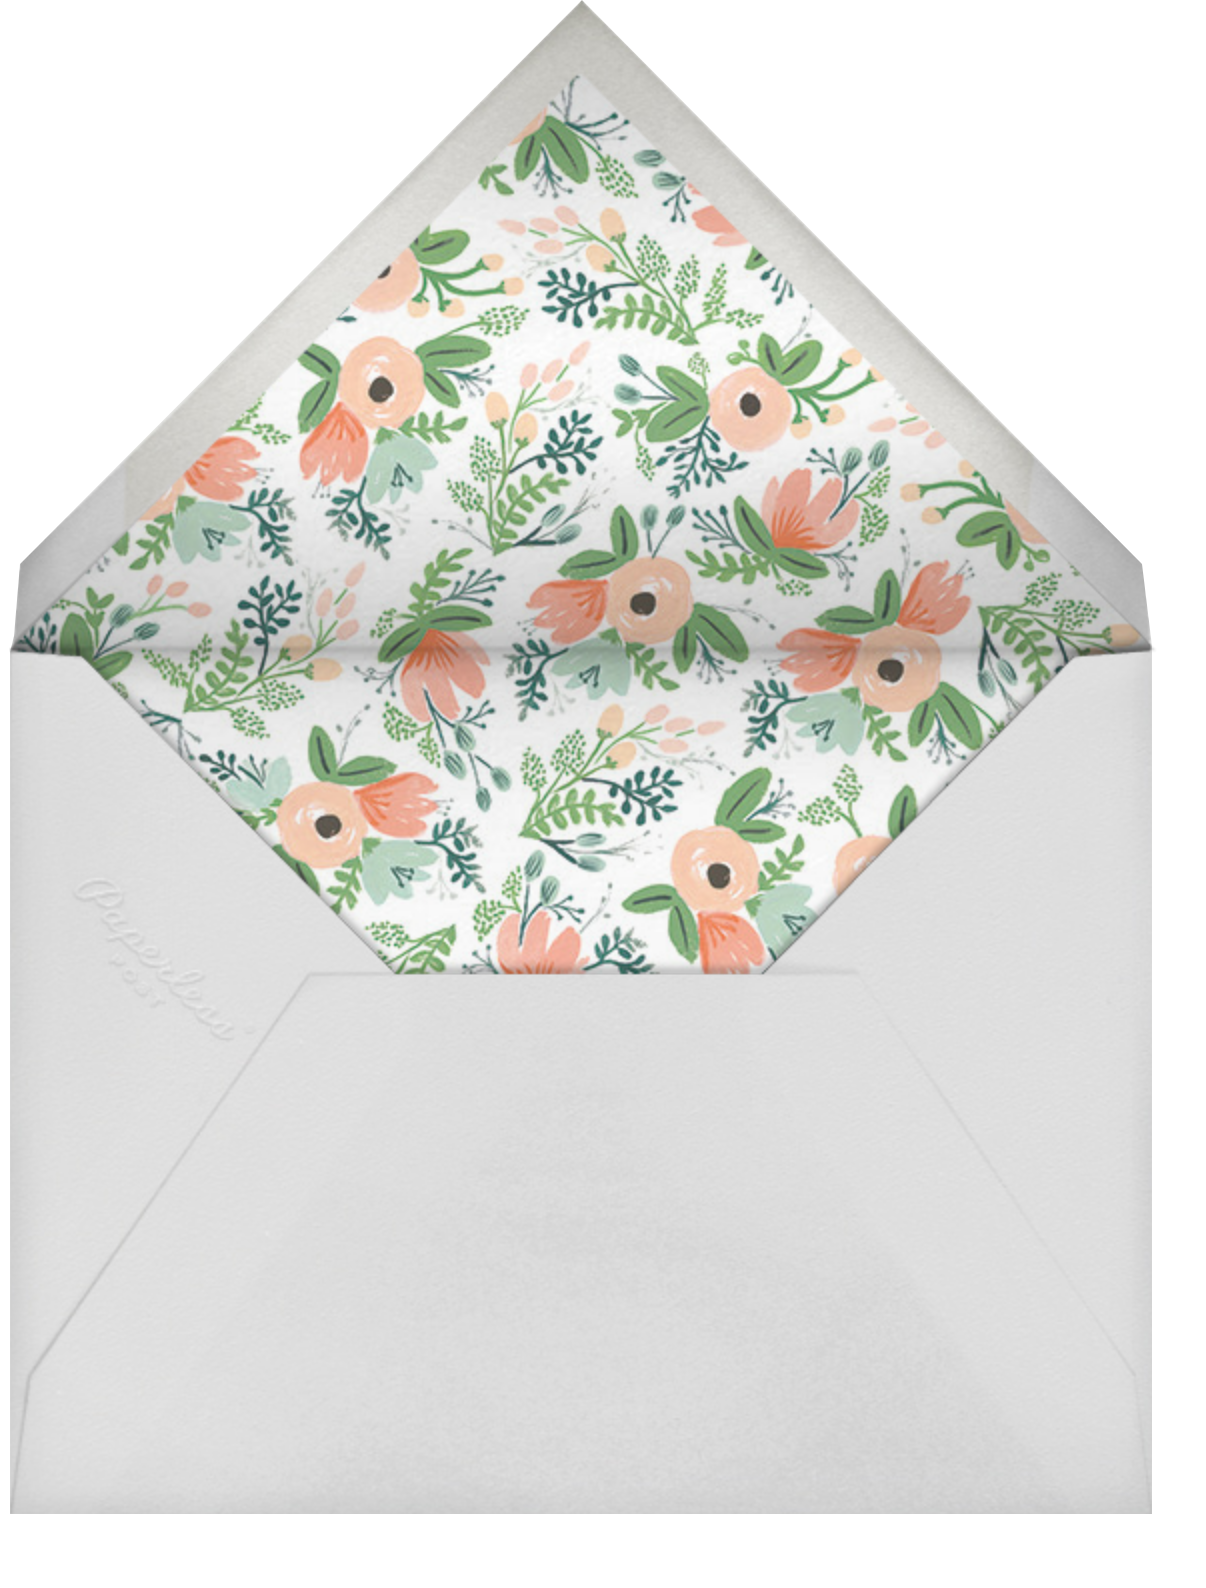 Wrapped in Wildflowers (Invitation) - Rifle Paper Co. - Baby shower - envelope back